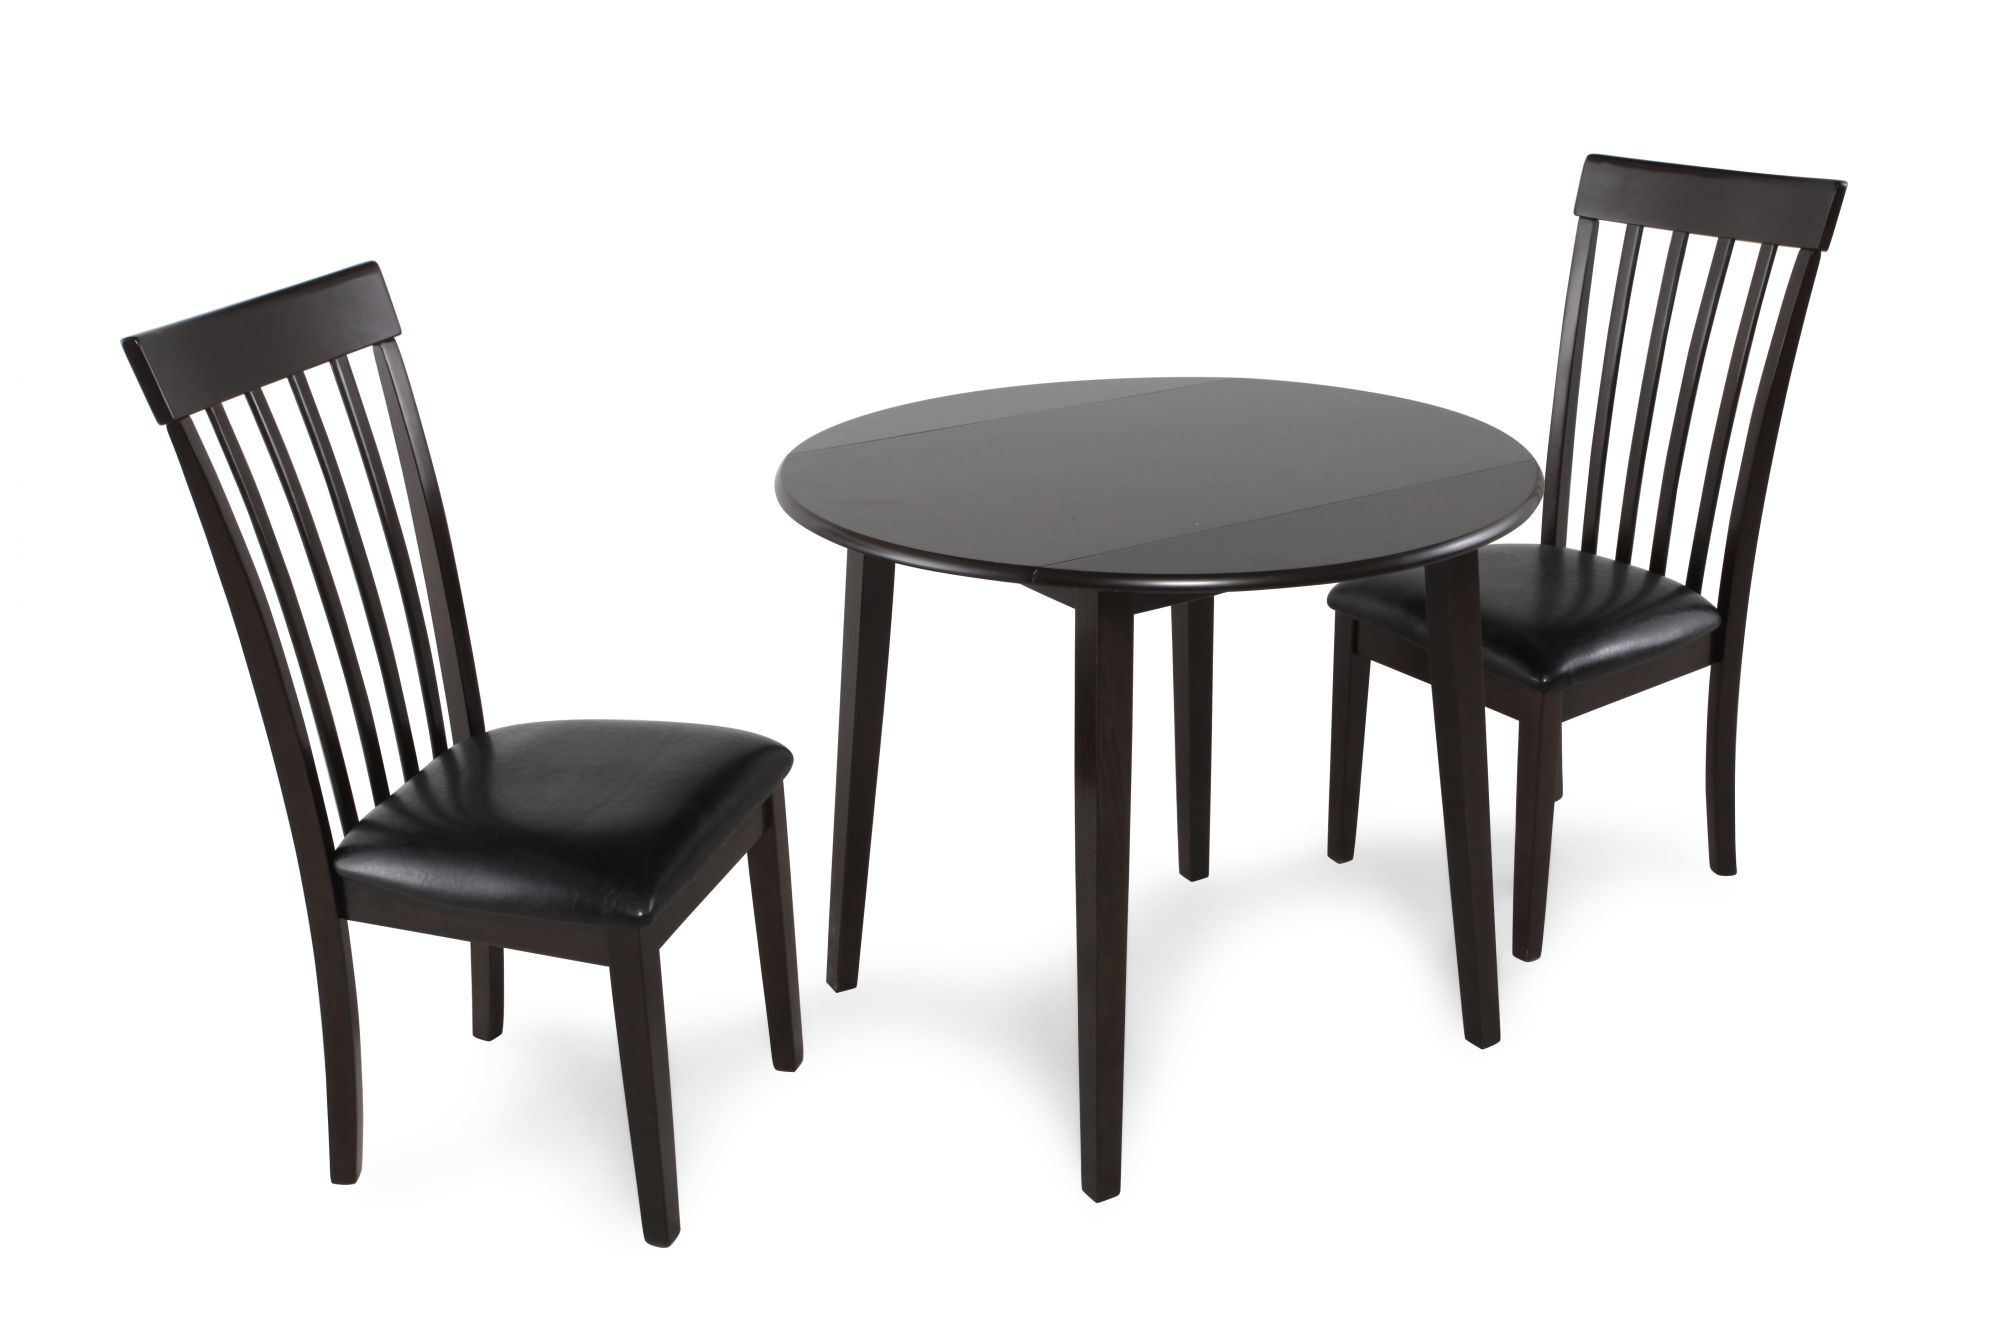 Three-Piece Contemporary Leather Round Dining Set in Dark Brown  sc 1 st  Mathis Brothers & Dining Room Sets u0026 Kitchen Furniture | Mathis Brothers